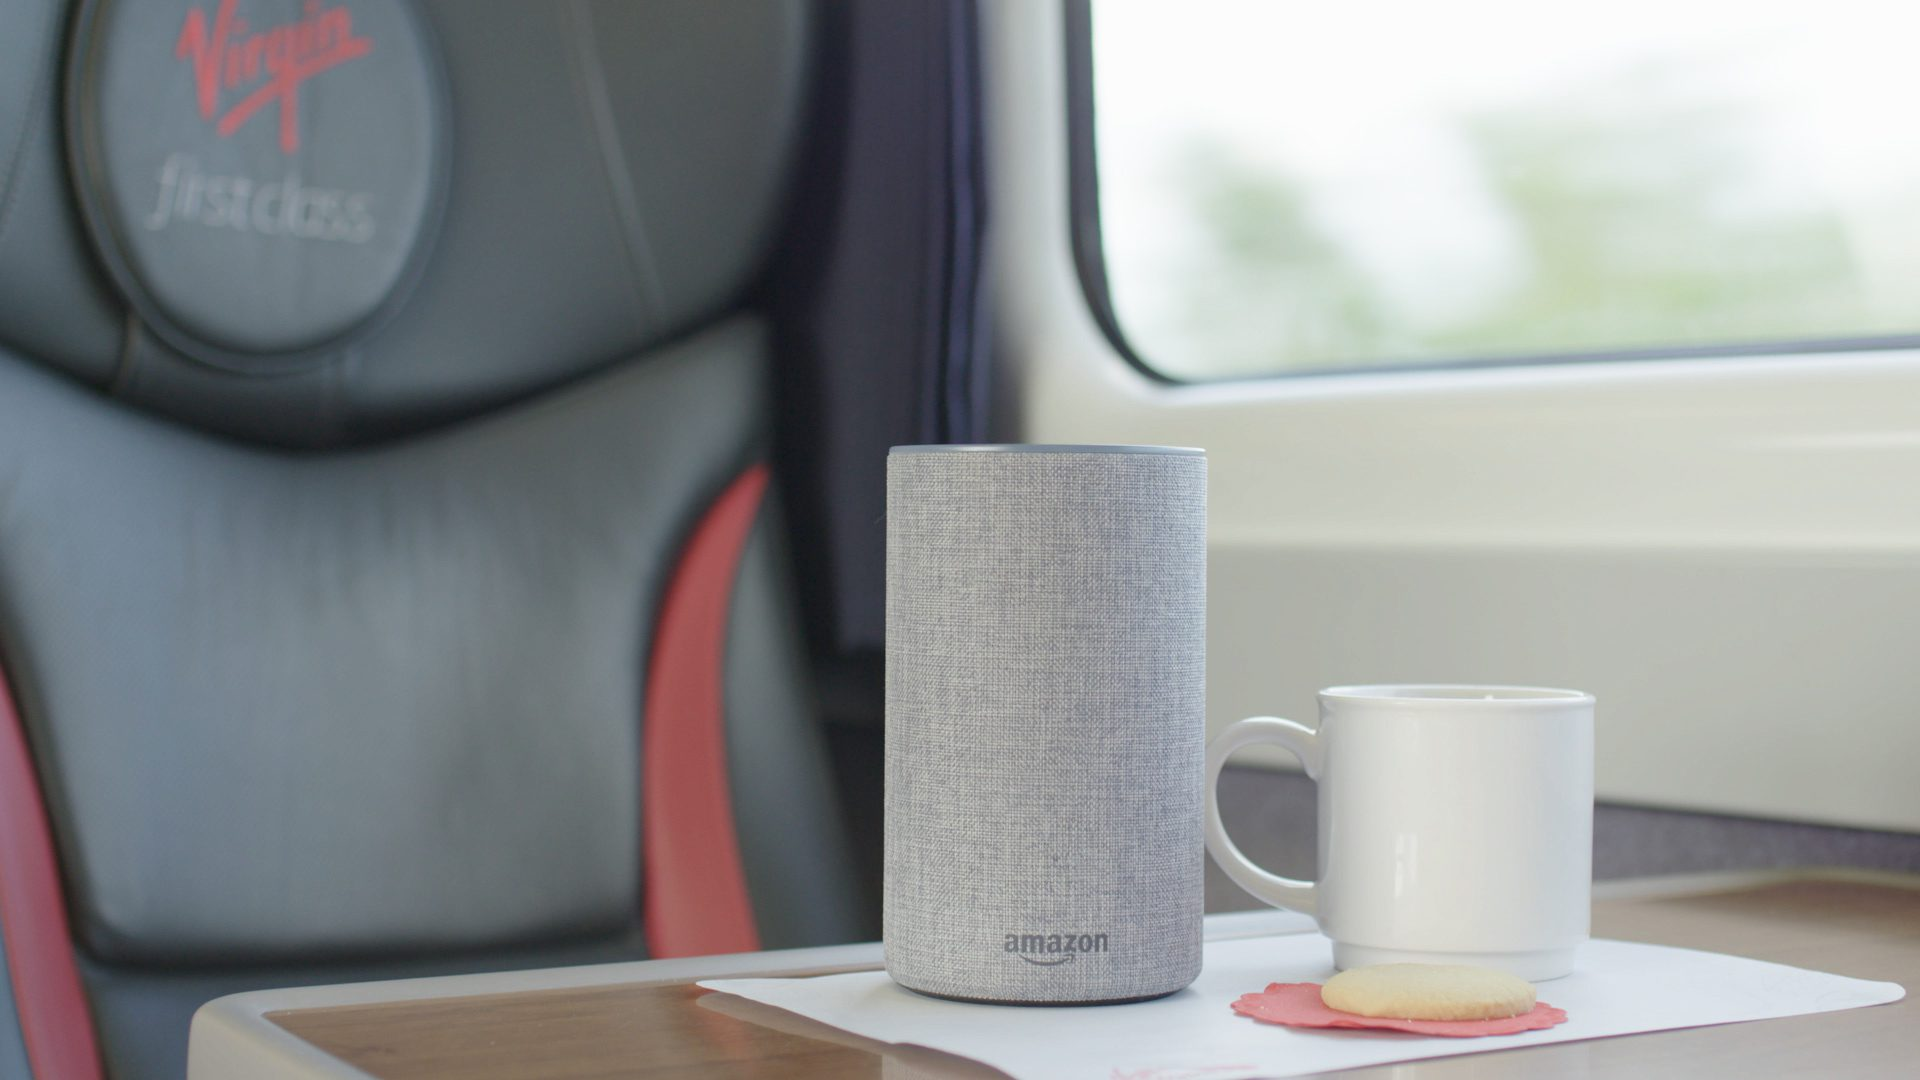 Virgin Trains and Amazon Alexa